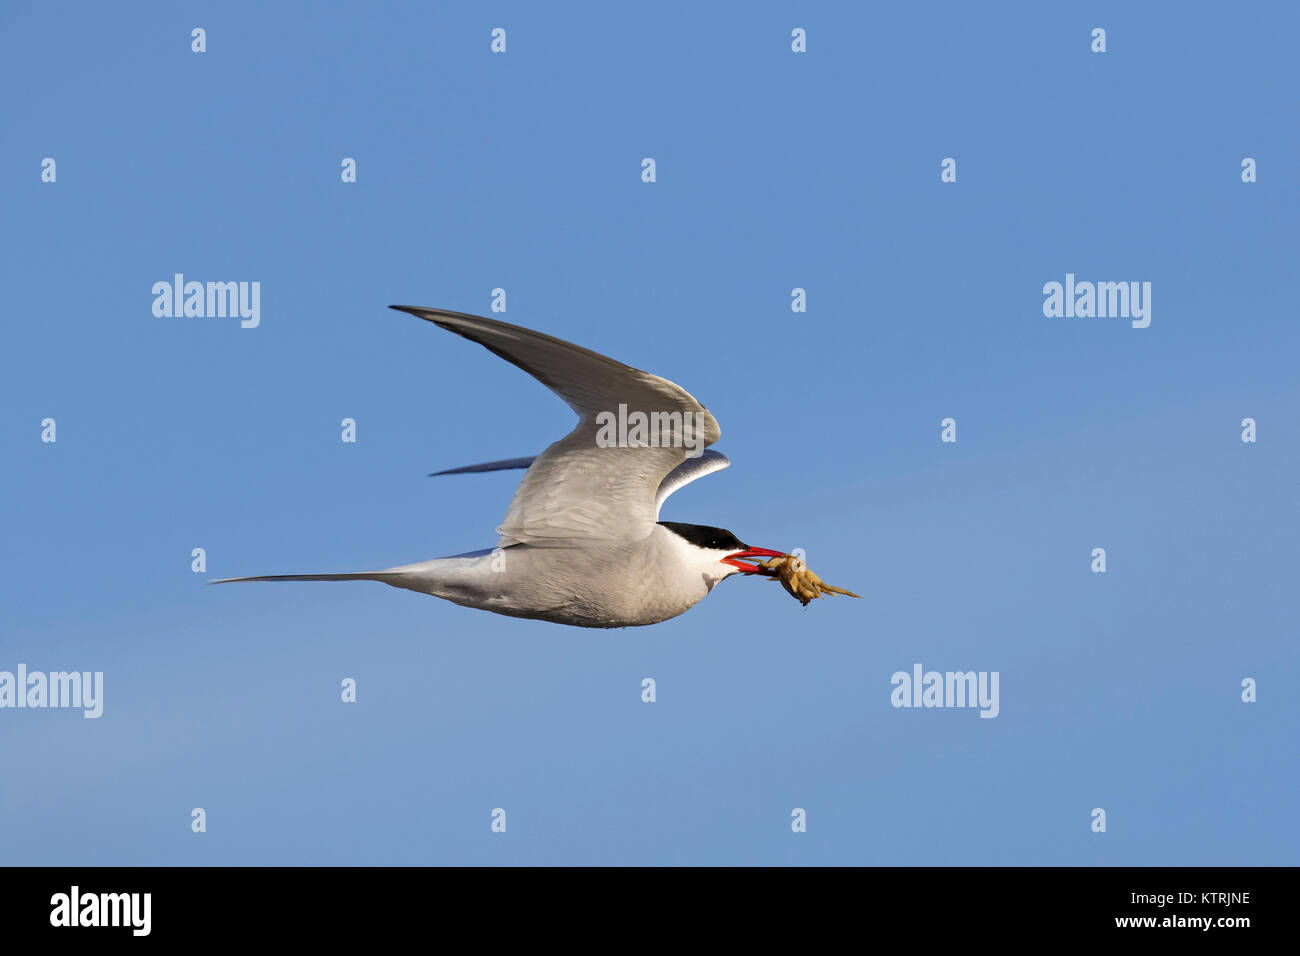 Arctic tern (Sterna paradisaea) with little crab in beak flying against blue sky - Stock Image